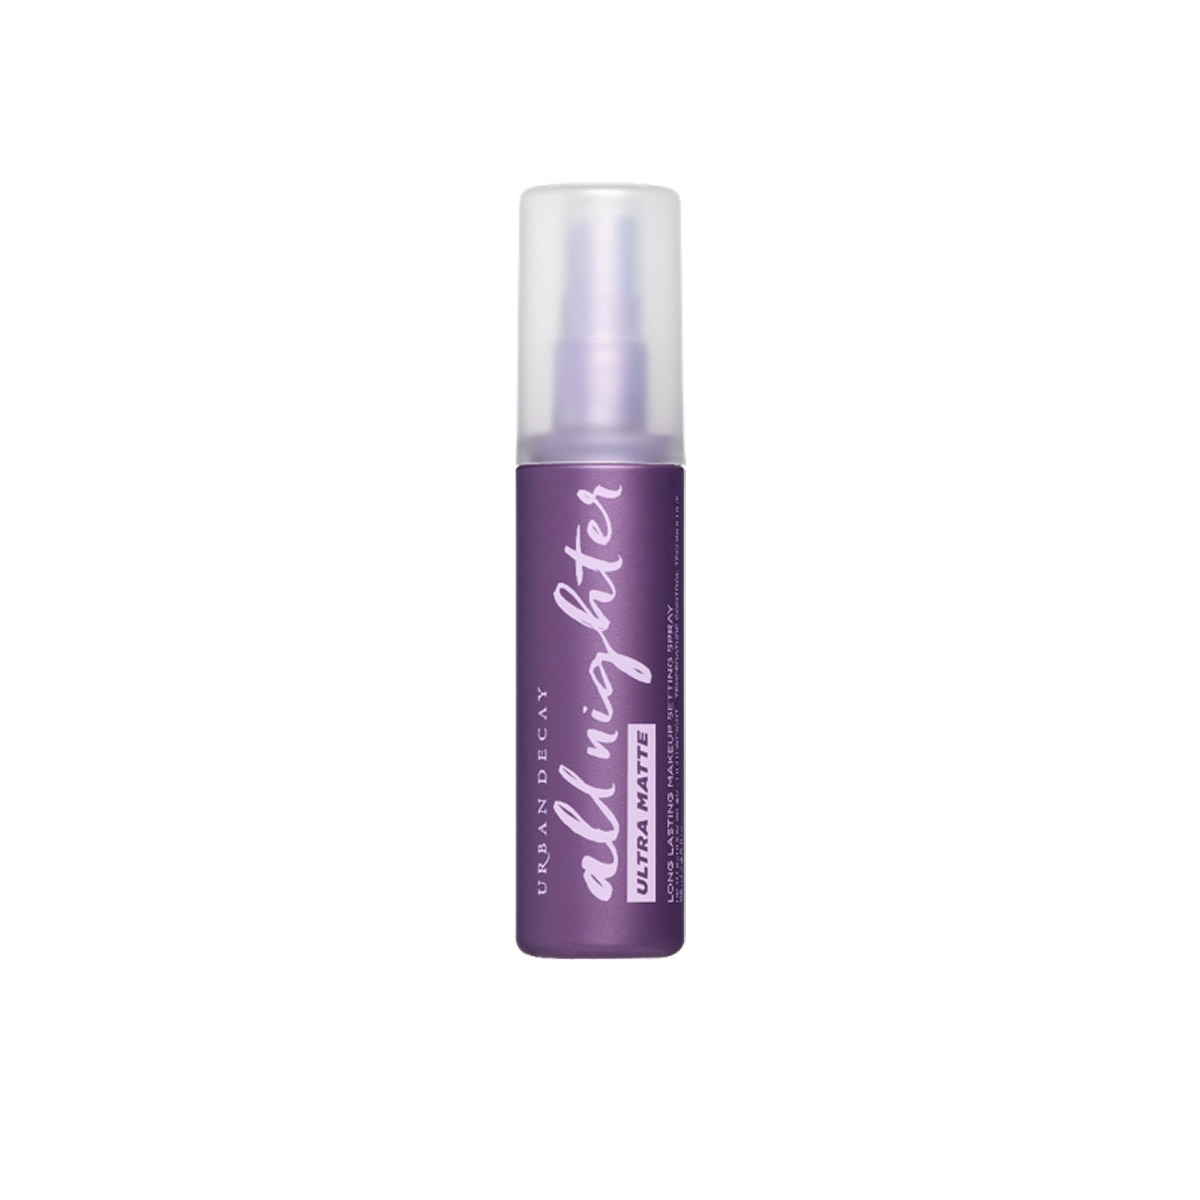 ALL NIGHTER SETTING SPRAY TRAVEL SIZE (SPRAY SELLADOR DE MAQUILLAJE TAMAÑO DE VIAJE)